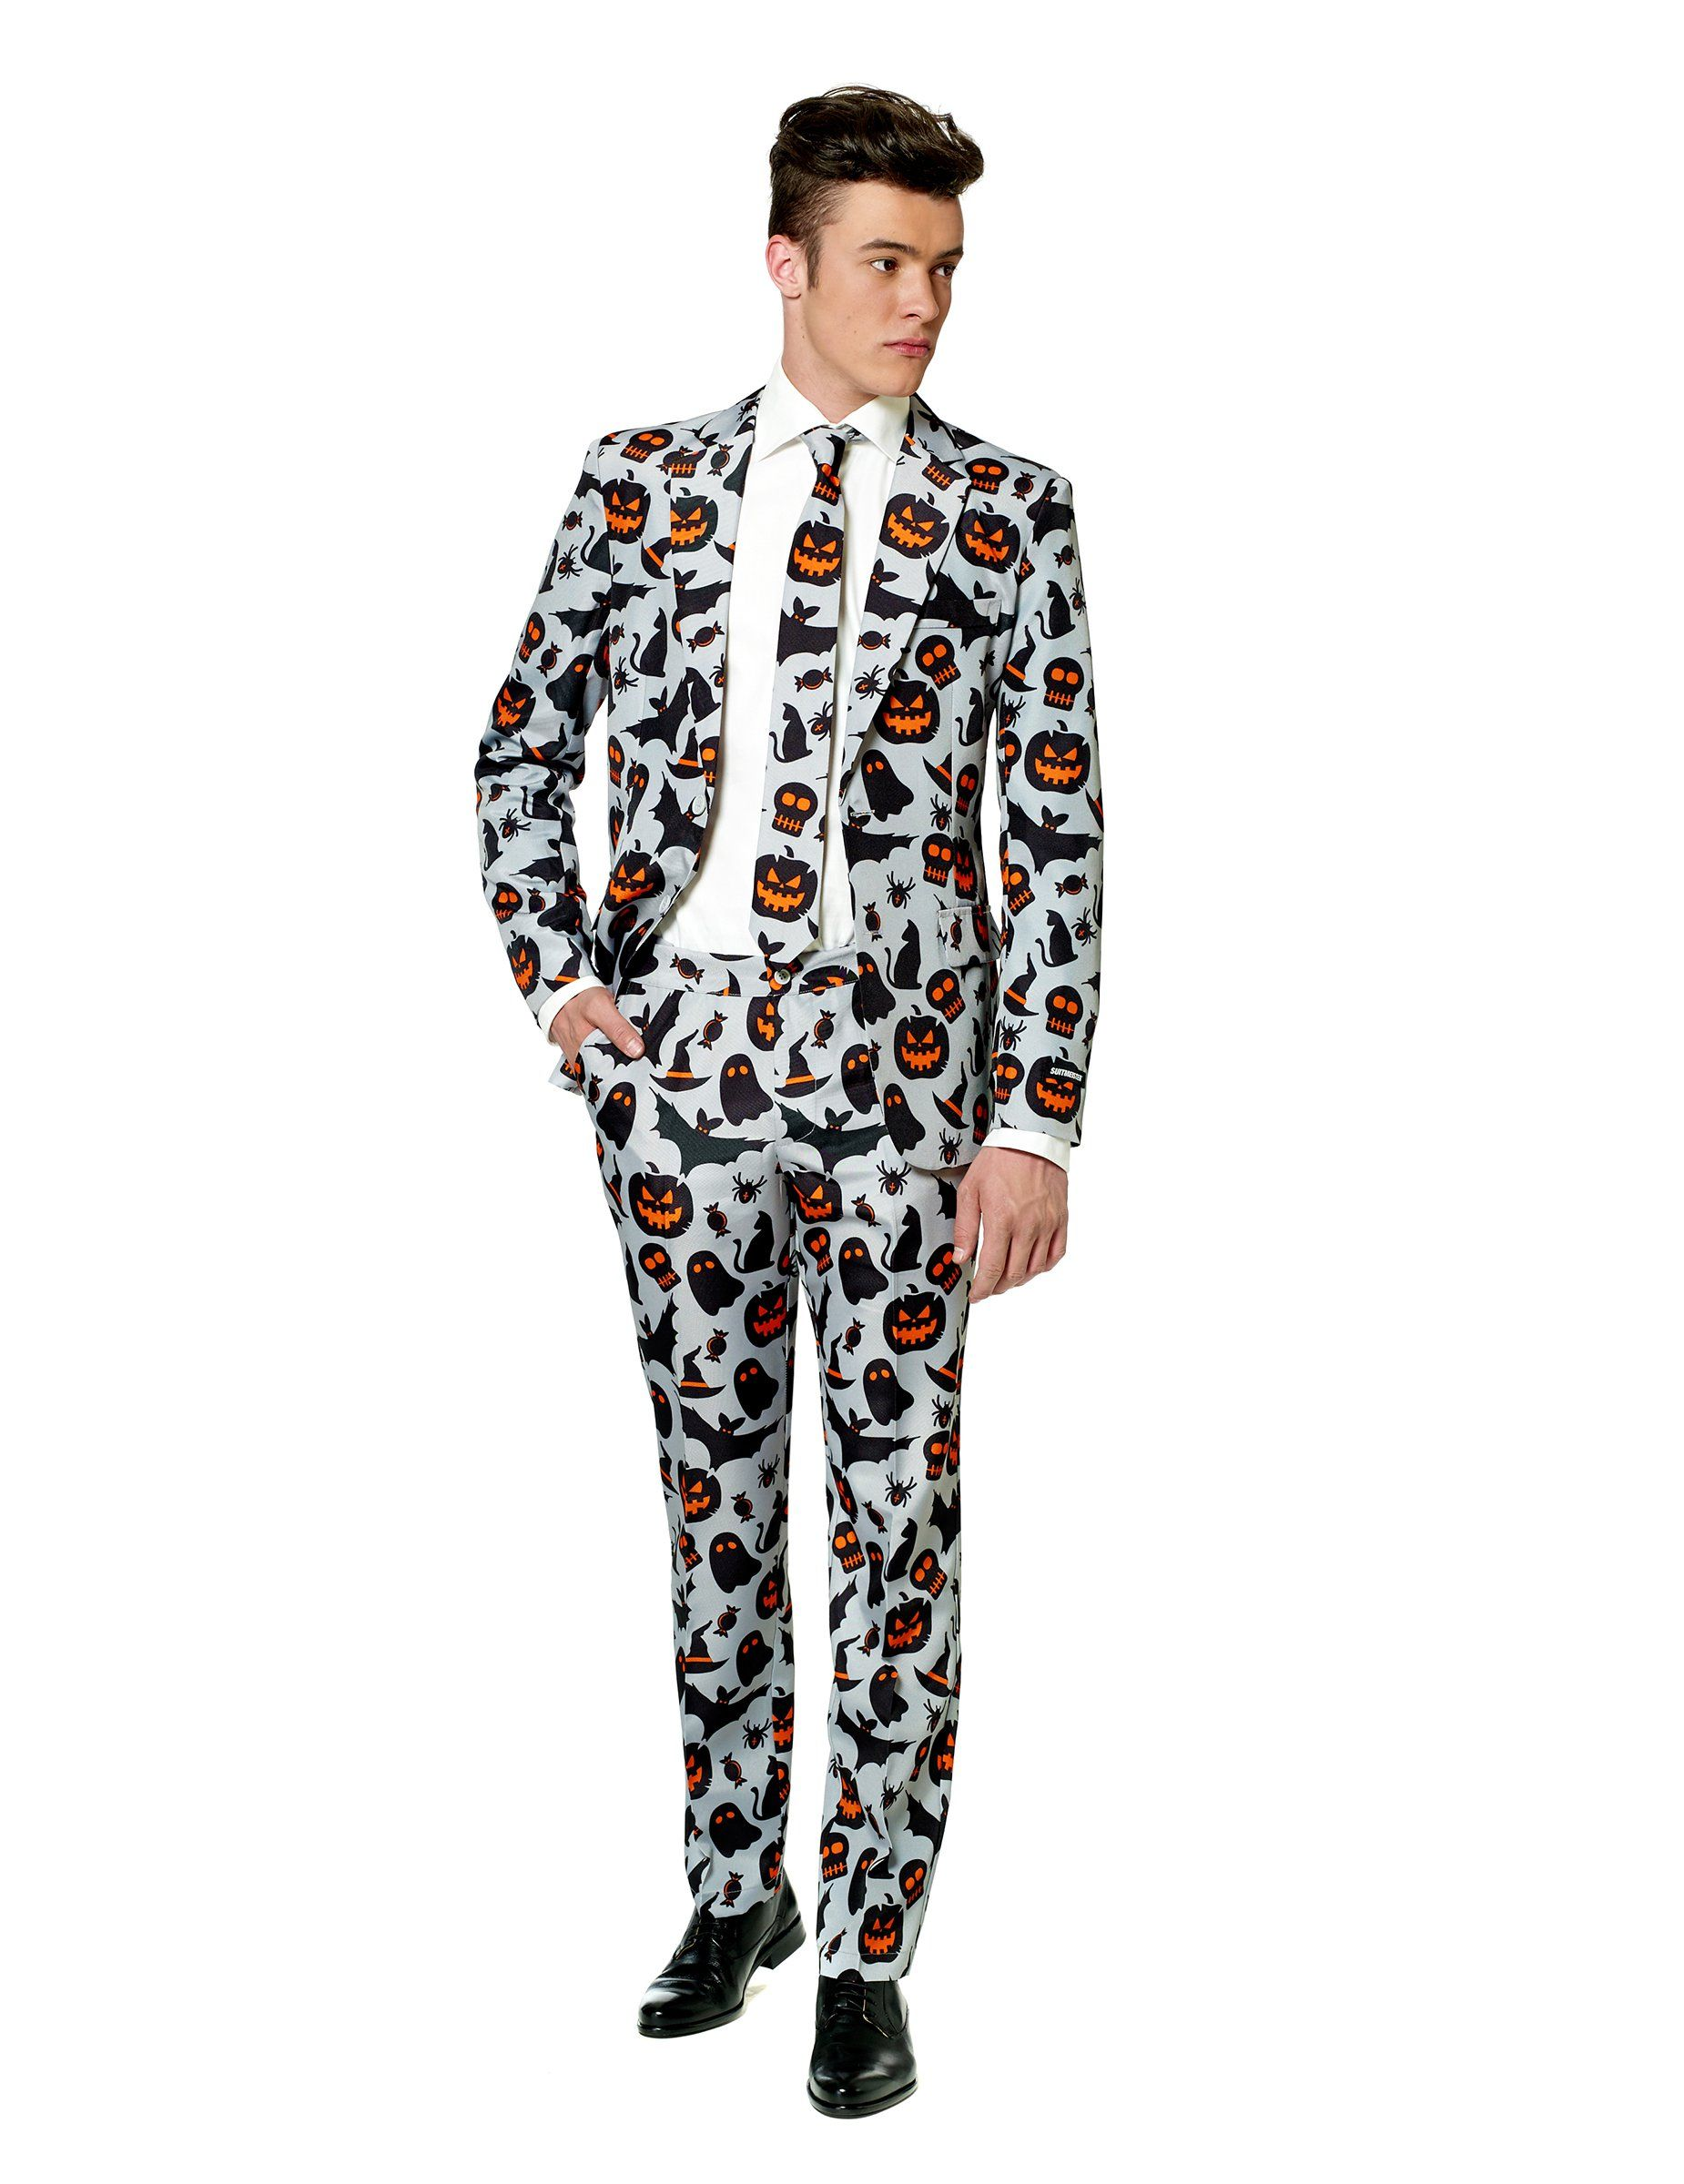 Hommes. Traje de Halloween Suitmeister™ hombre Icone c9f5ae71eac